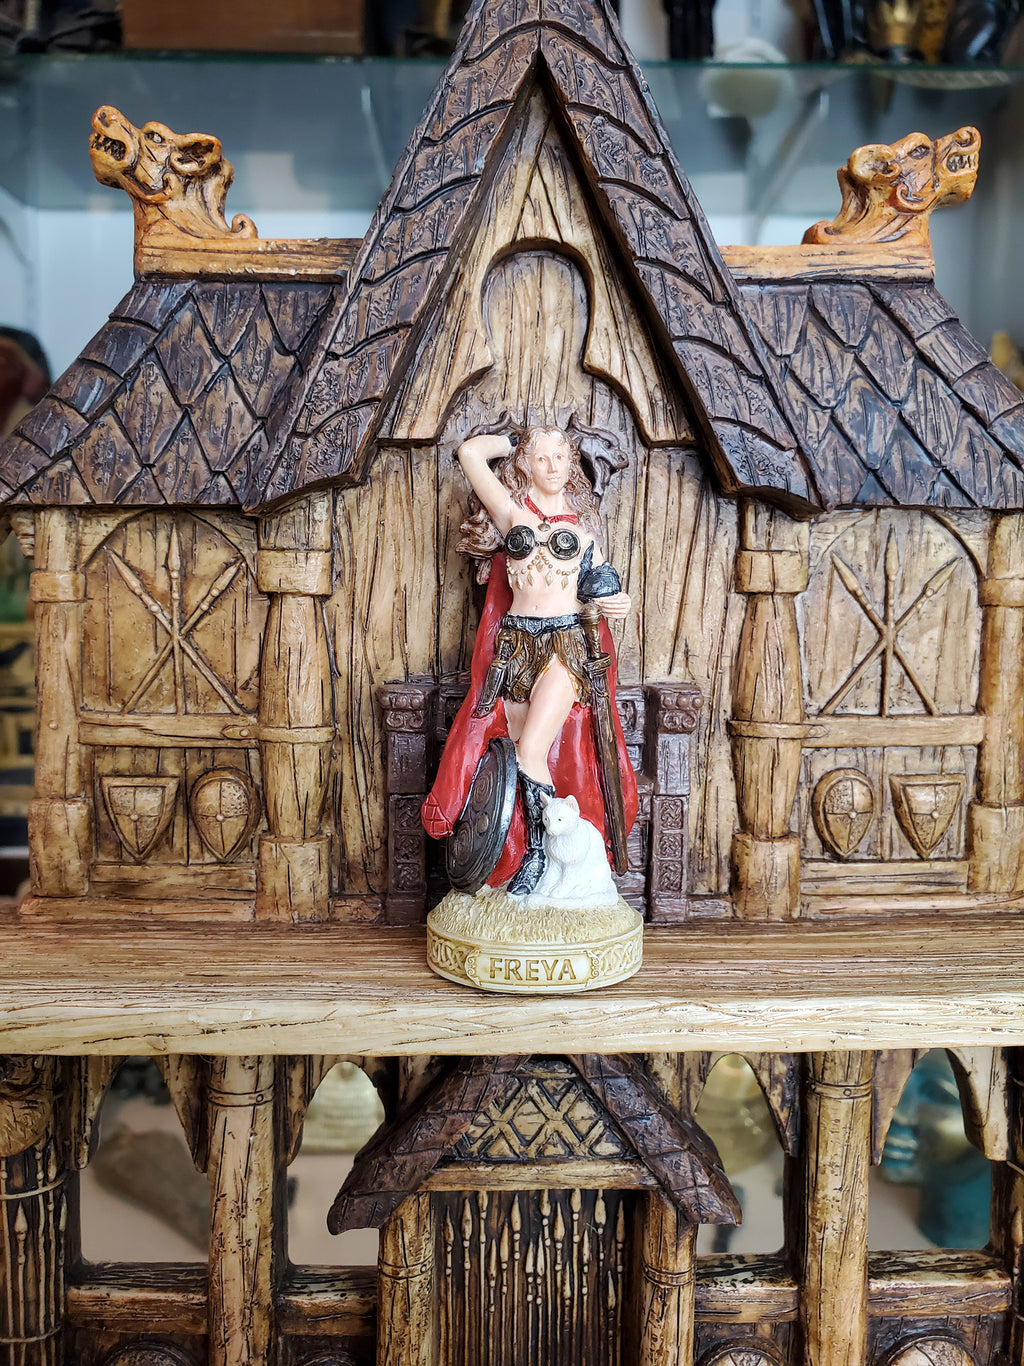 Freya Mini Statue - Small Hand-Painted Norse God Freyja/Freja